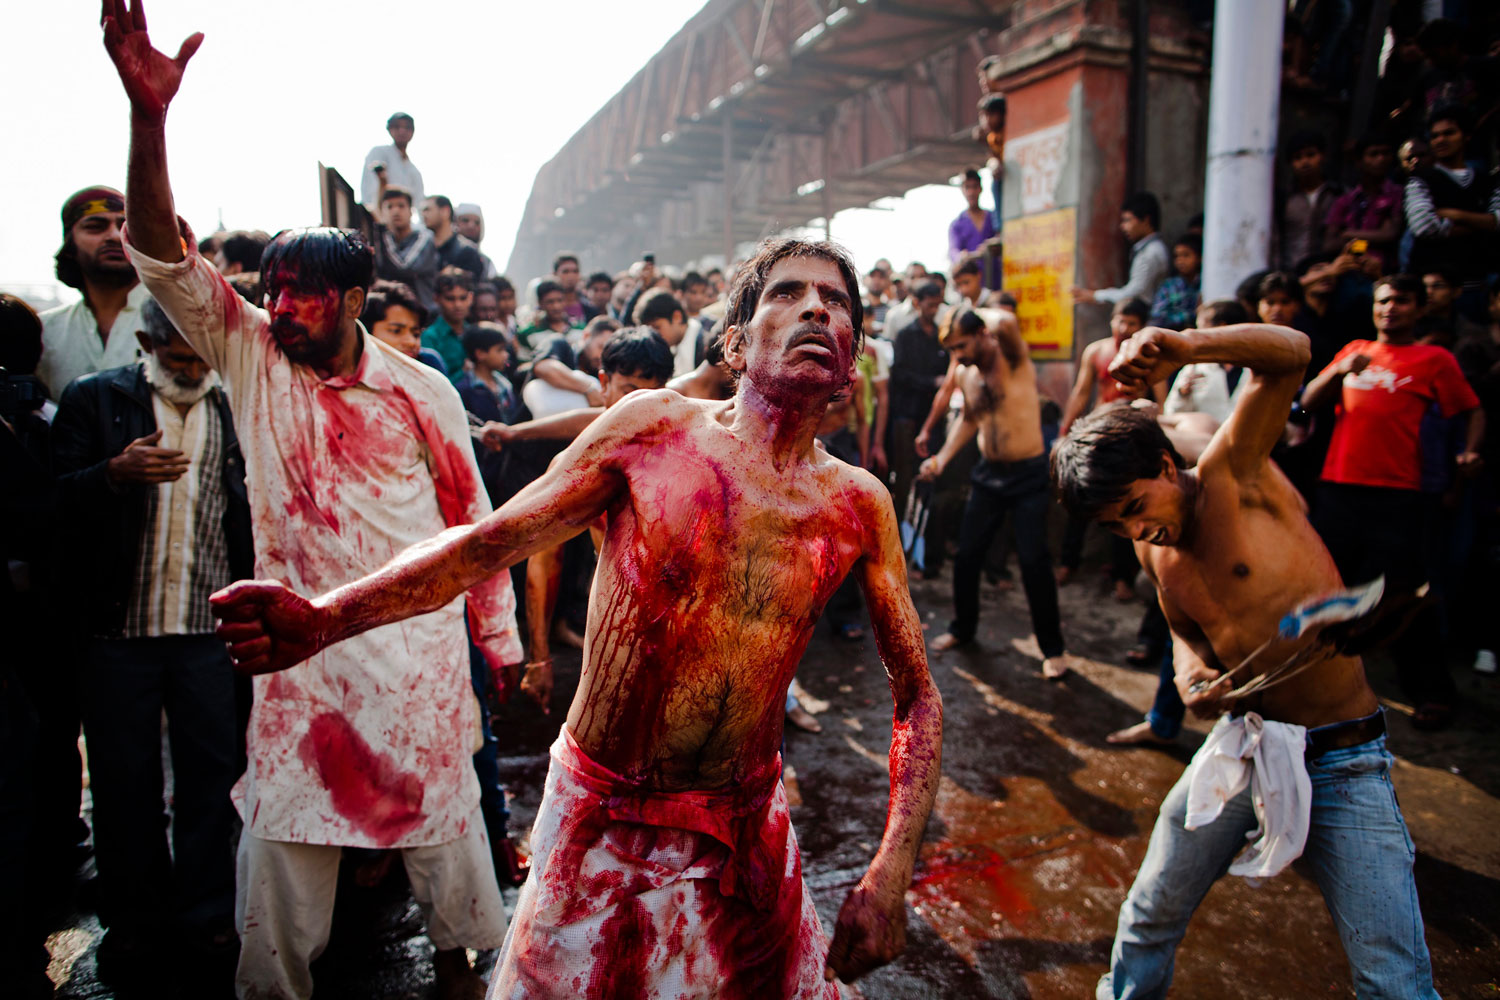 December 6, 2011. Shi'ite Muslim men and boys beat their chests as they practice self-flagellation during the religious ritual of Ashura in New Delhi, India. Hundreds of Muslims in New Delhi and thousands around India took part in a procession to mark the 10th day of the Islamic month of Muharram.